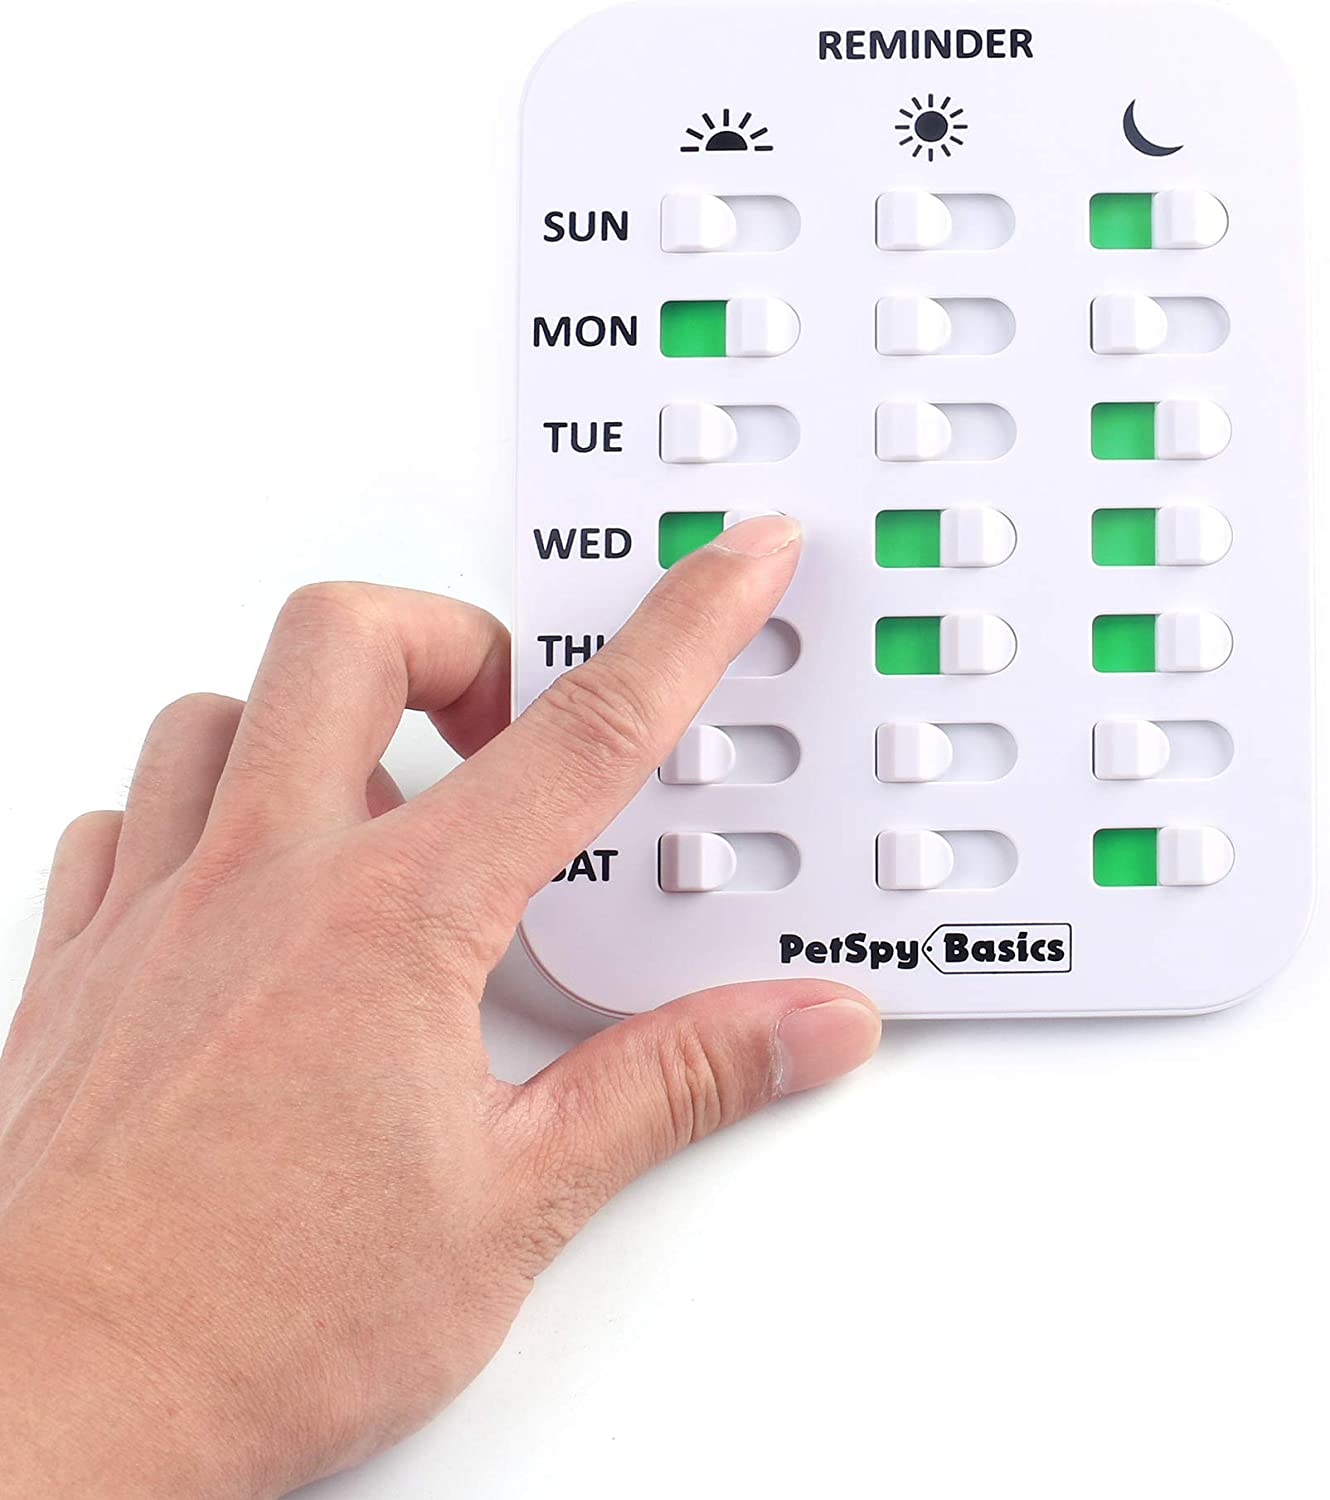 PetSpy Dog Feeding Reminder 3 Times a Day Pet Feeding Chart Easy to Mount Magnetic Tracker to Feed Your Dog Cat, Sticker Daily Indication Tool, Medicine and Food Tracker